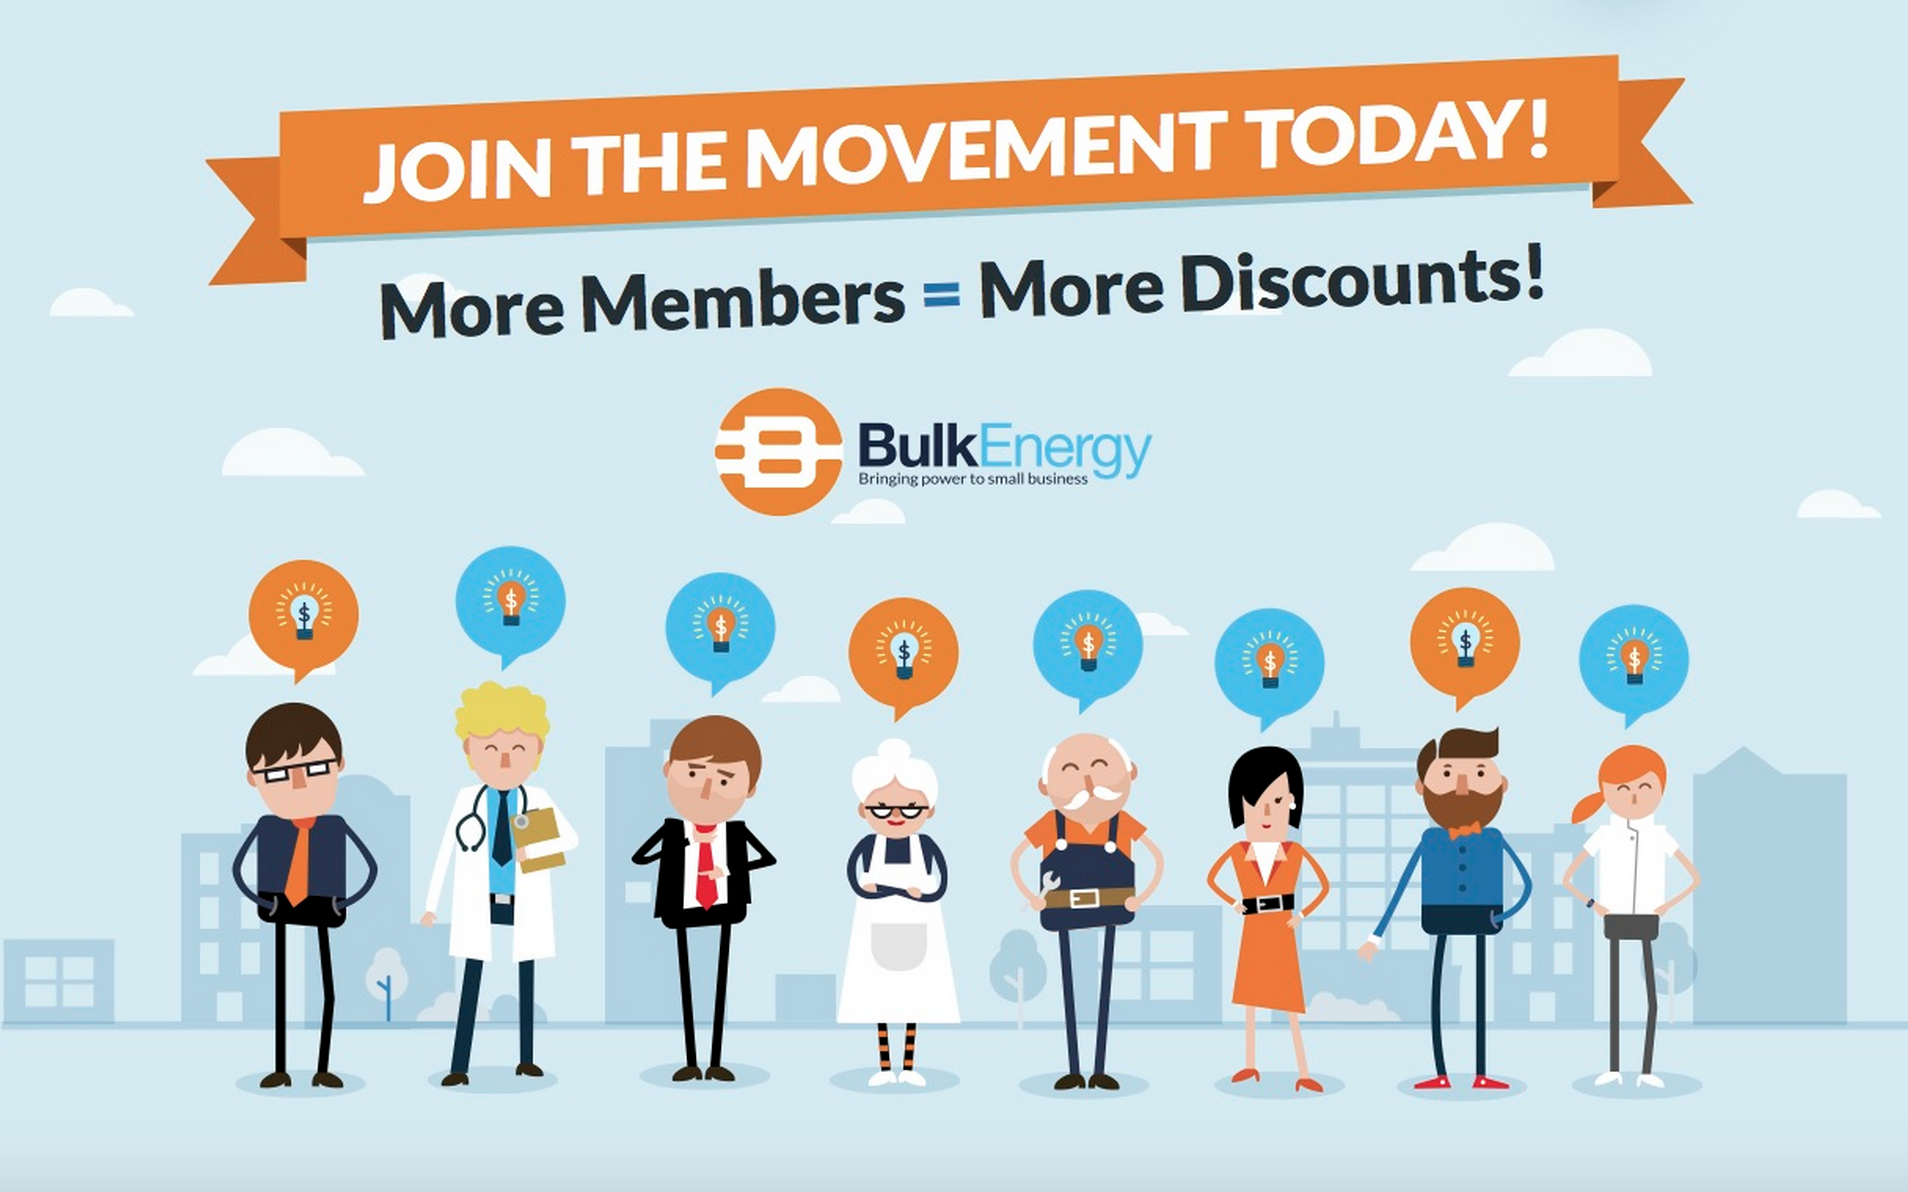 Have you met Bulk Energy yet? Join the movement today!